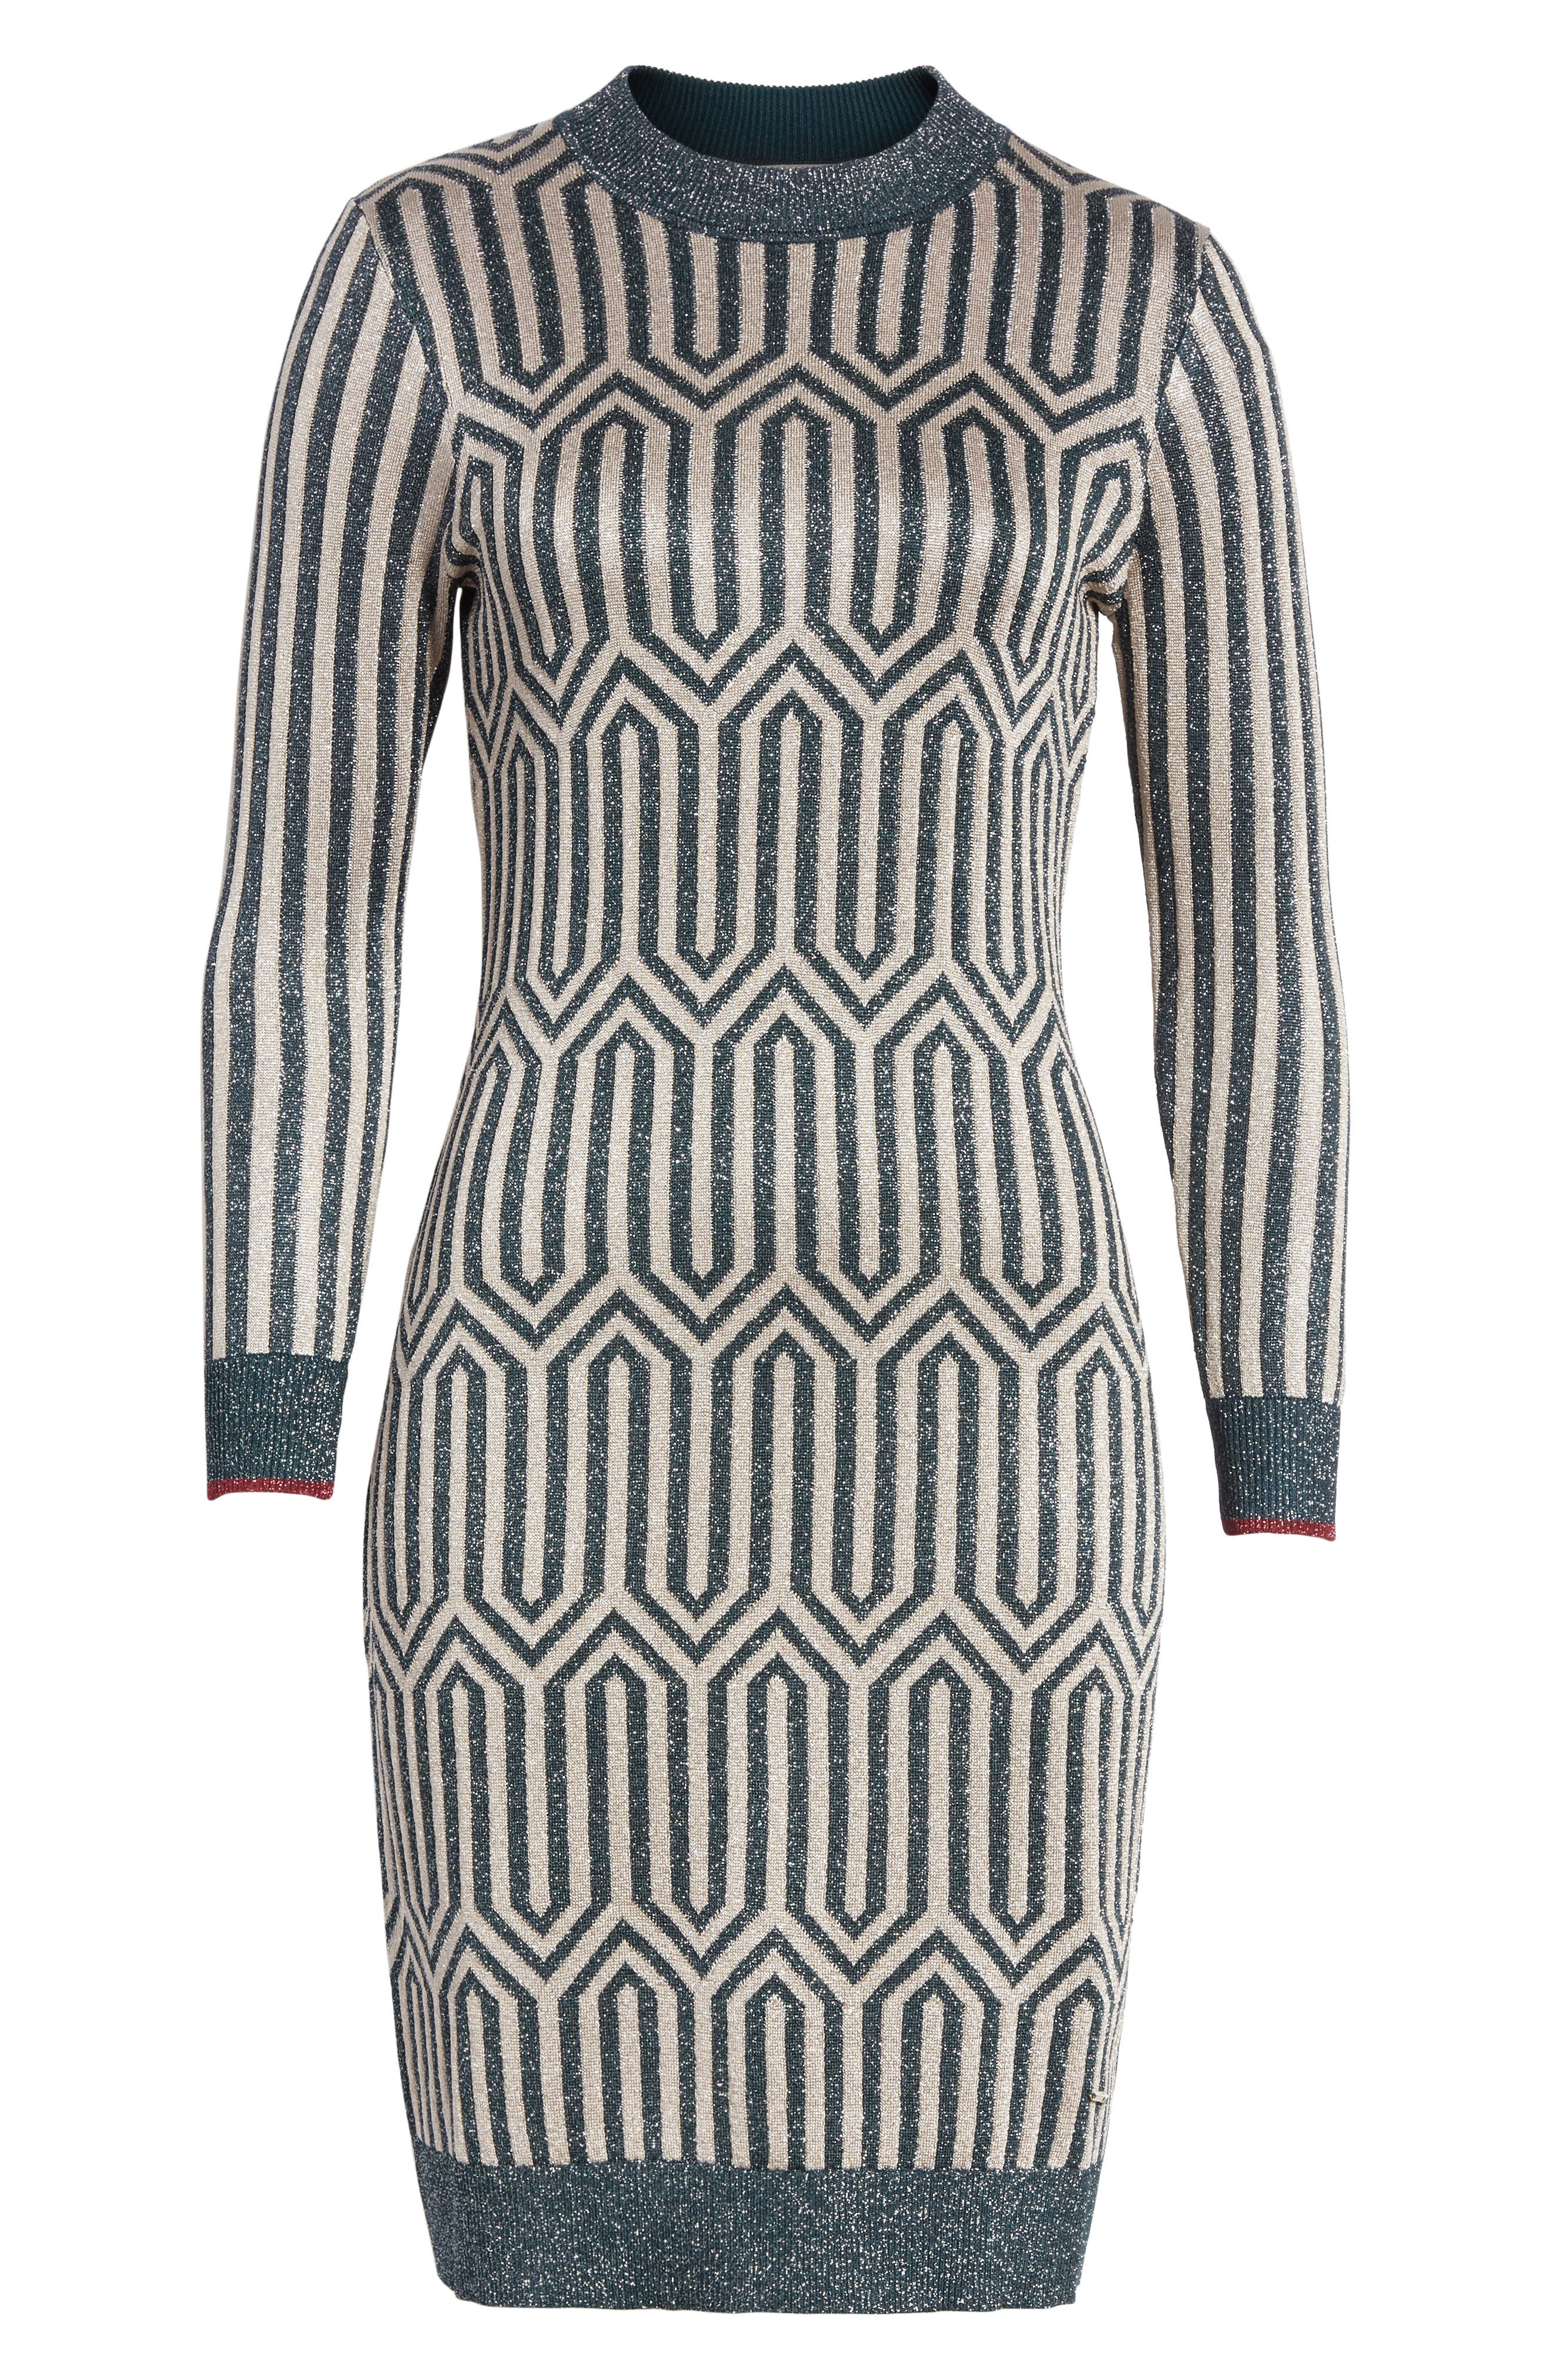 Metallic Knit Dress,                             Alternate thumbnail 6, color,                             440